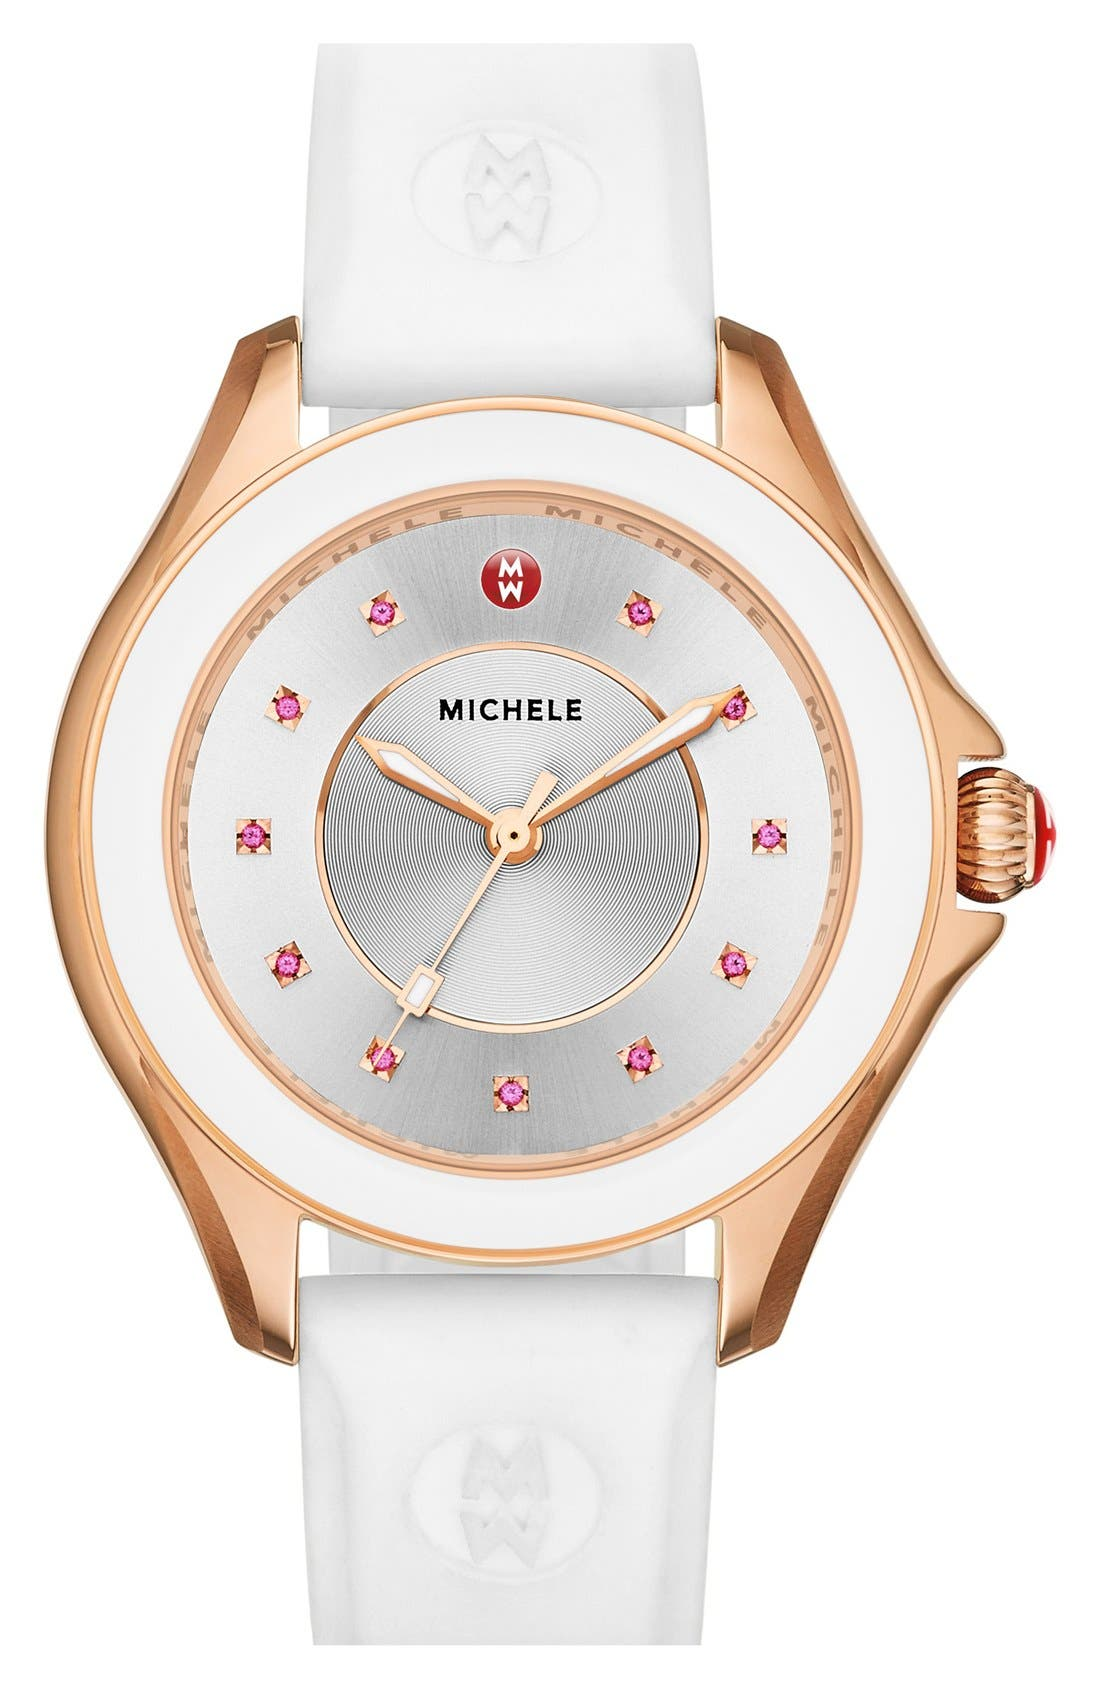 MICHELE, Cape Topaz Dial Silicone Strap Watch, 40mm, Main thumbnail 1, color, 100